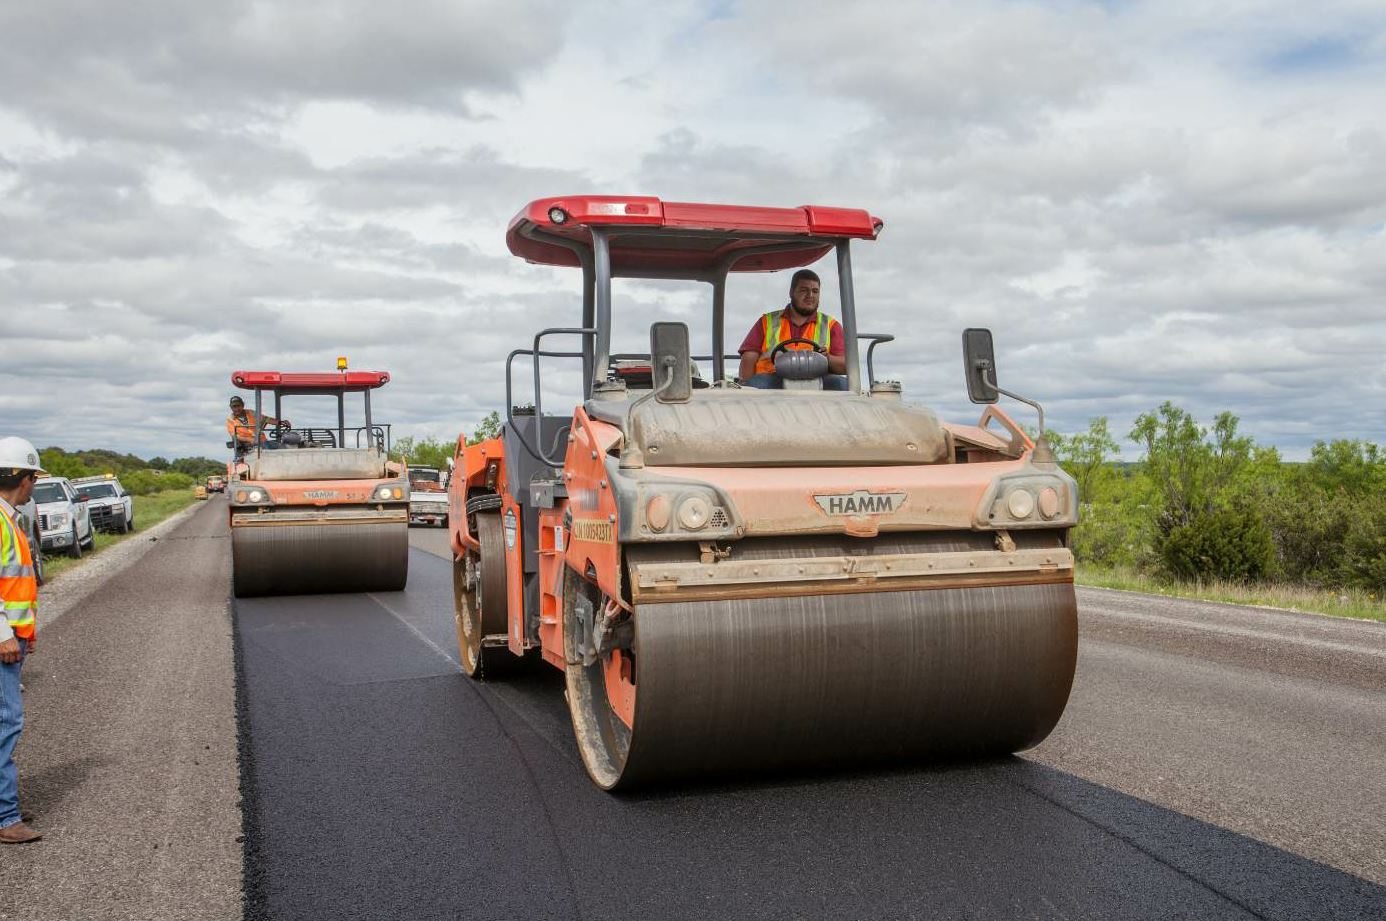 A spokesperson for CollAggs shared that one goal is to gain exposure for Delta S in the Southwest United States to compliment the formally monitored asphalt rejuvenator paving projects ongoing in the Northeast, Midwest and Southeast since the product's launch in May 2015.